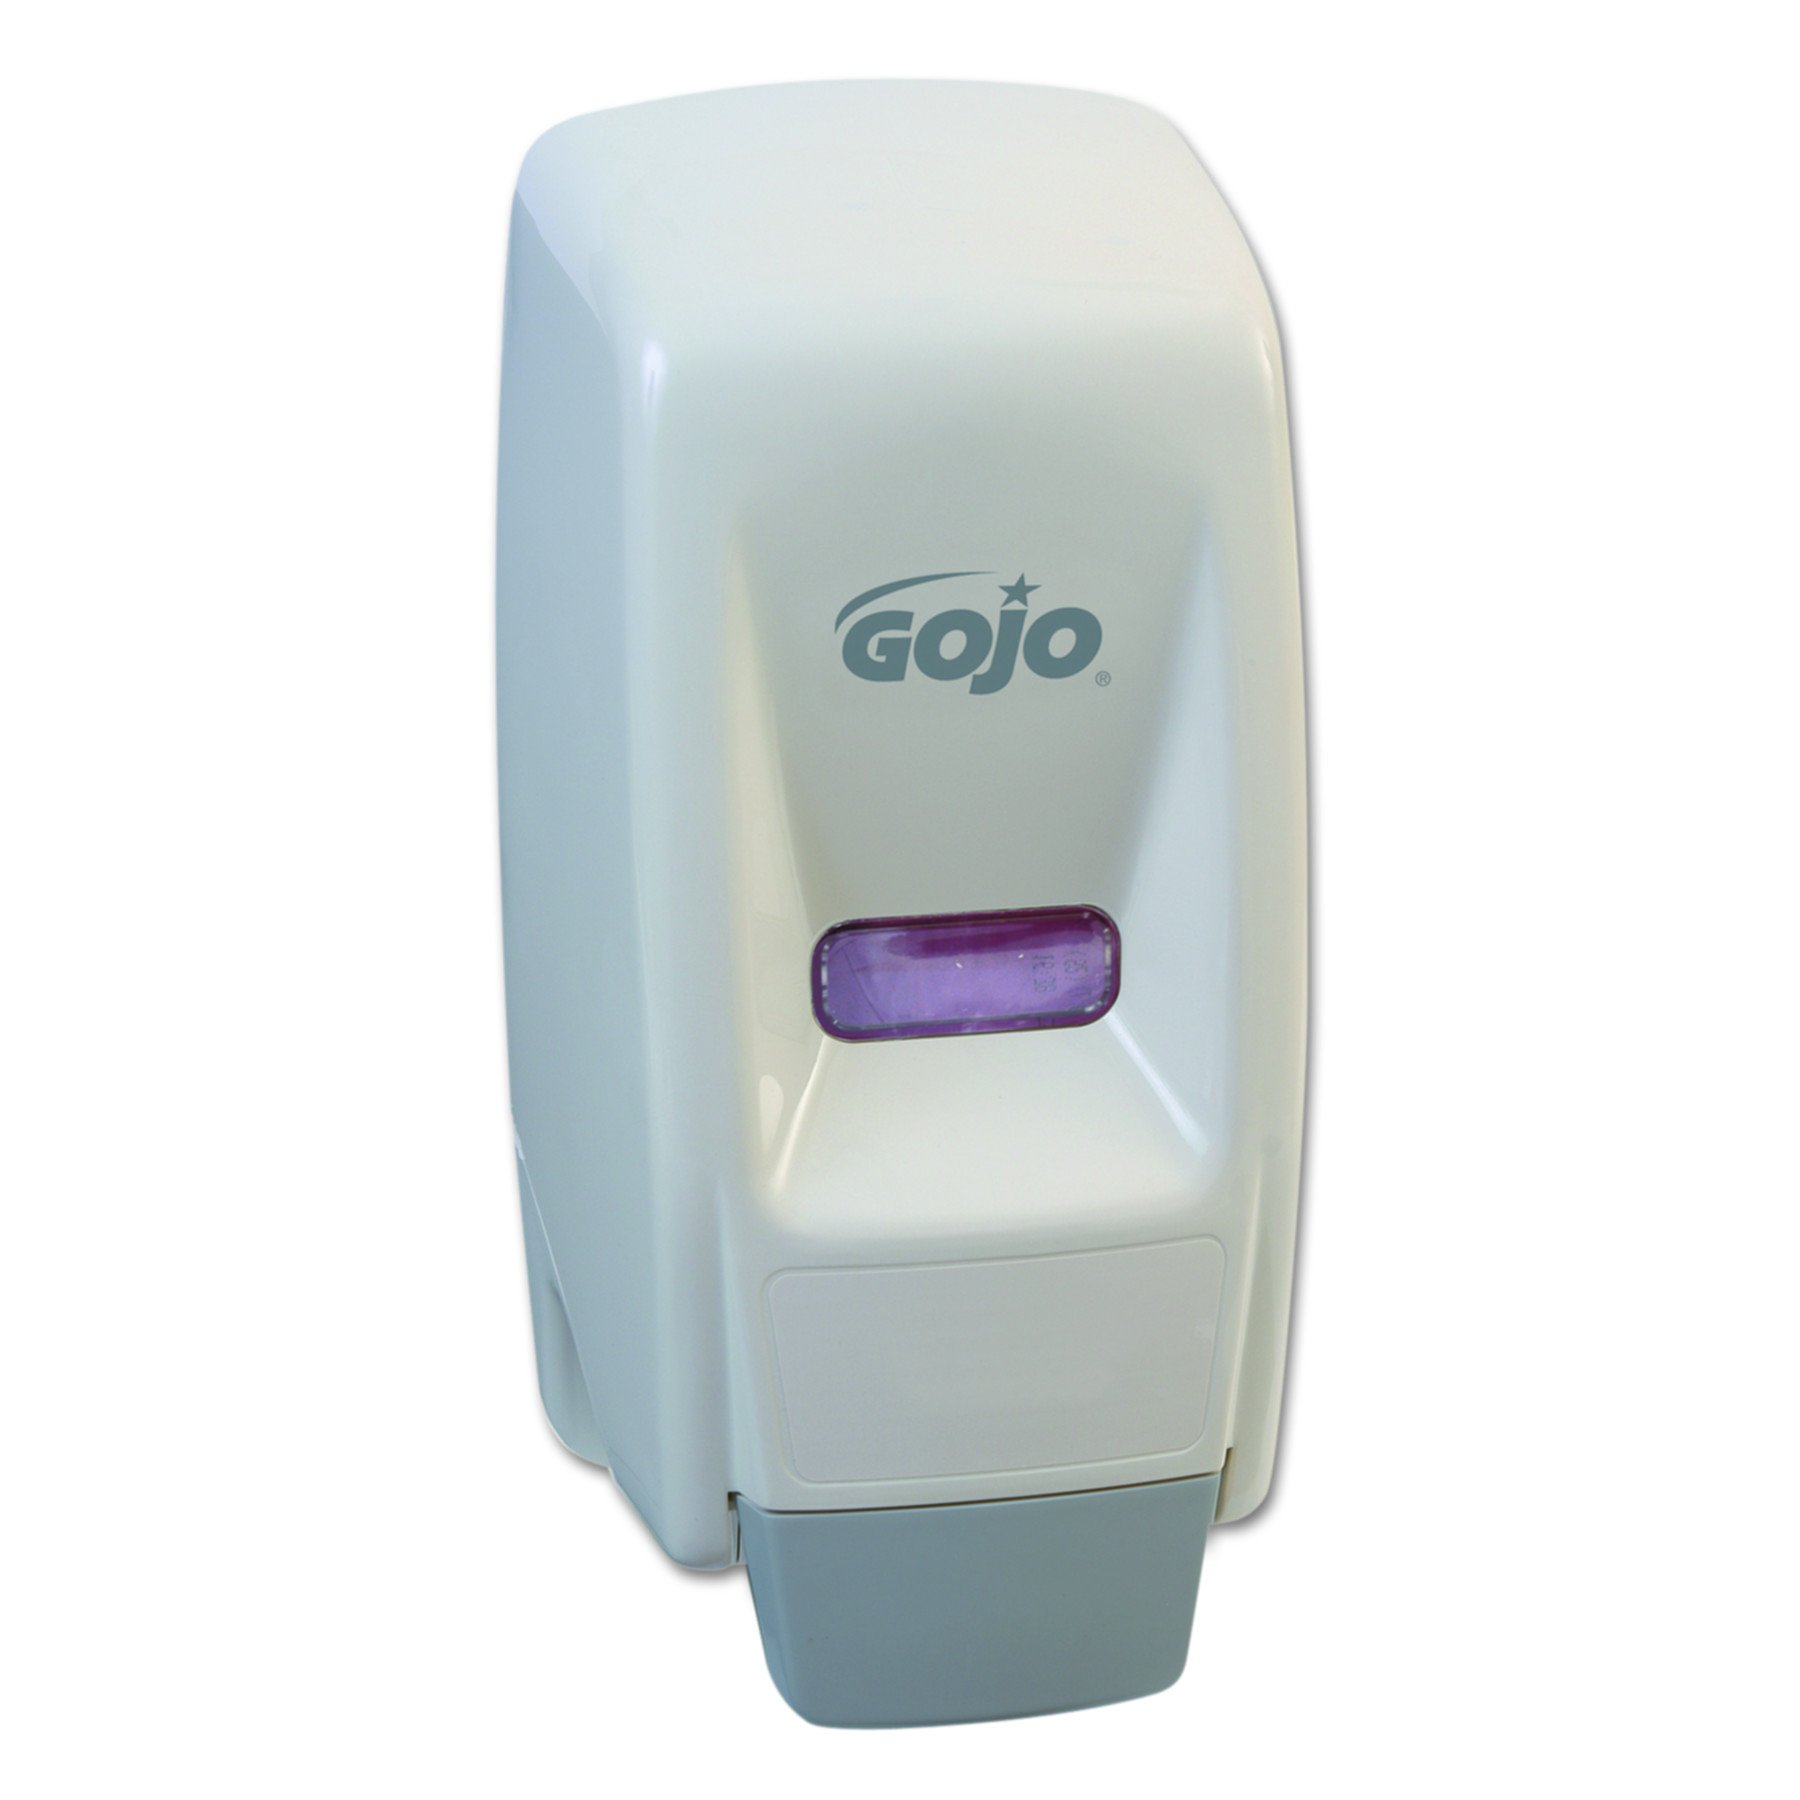 GOJO 903412 Bag-In-Box Liquid Soap Dispenser, 800mL, 5 3/4w x 5 1/2d x 11 1/8h, White by Gojo